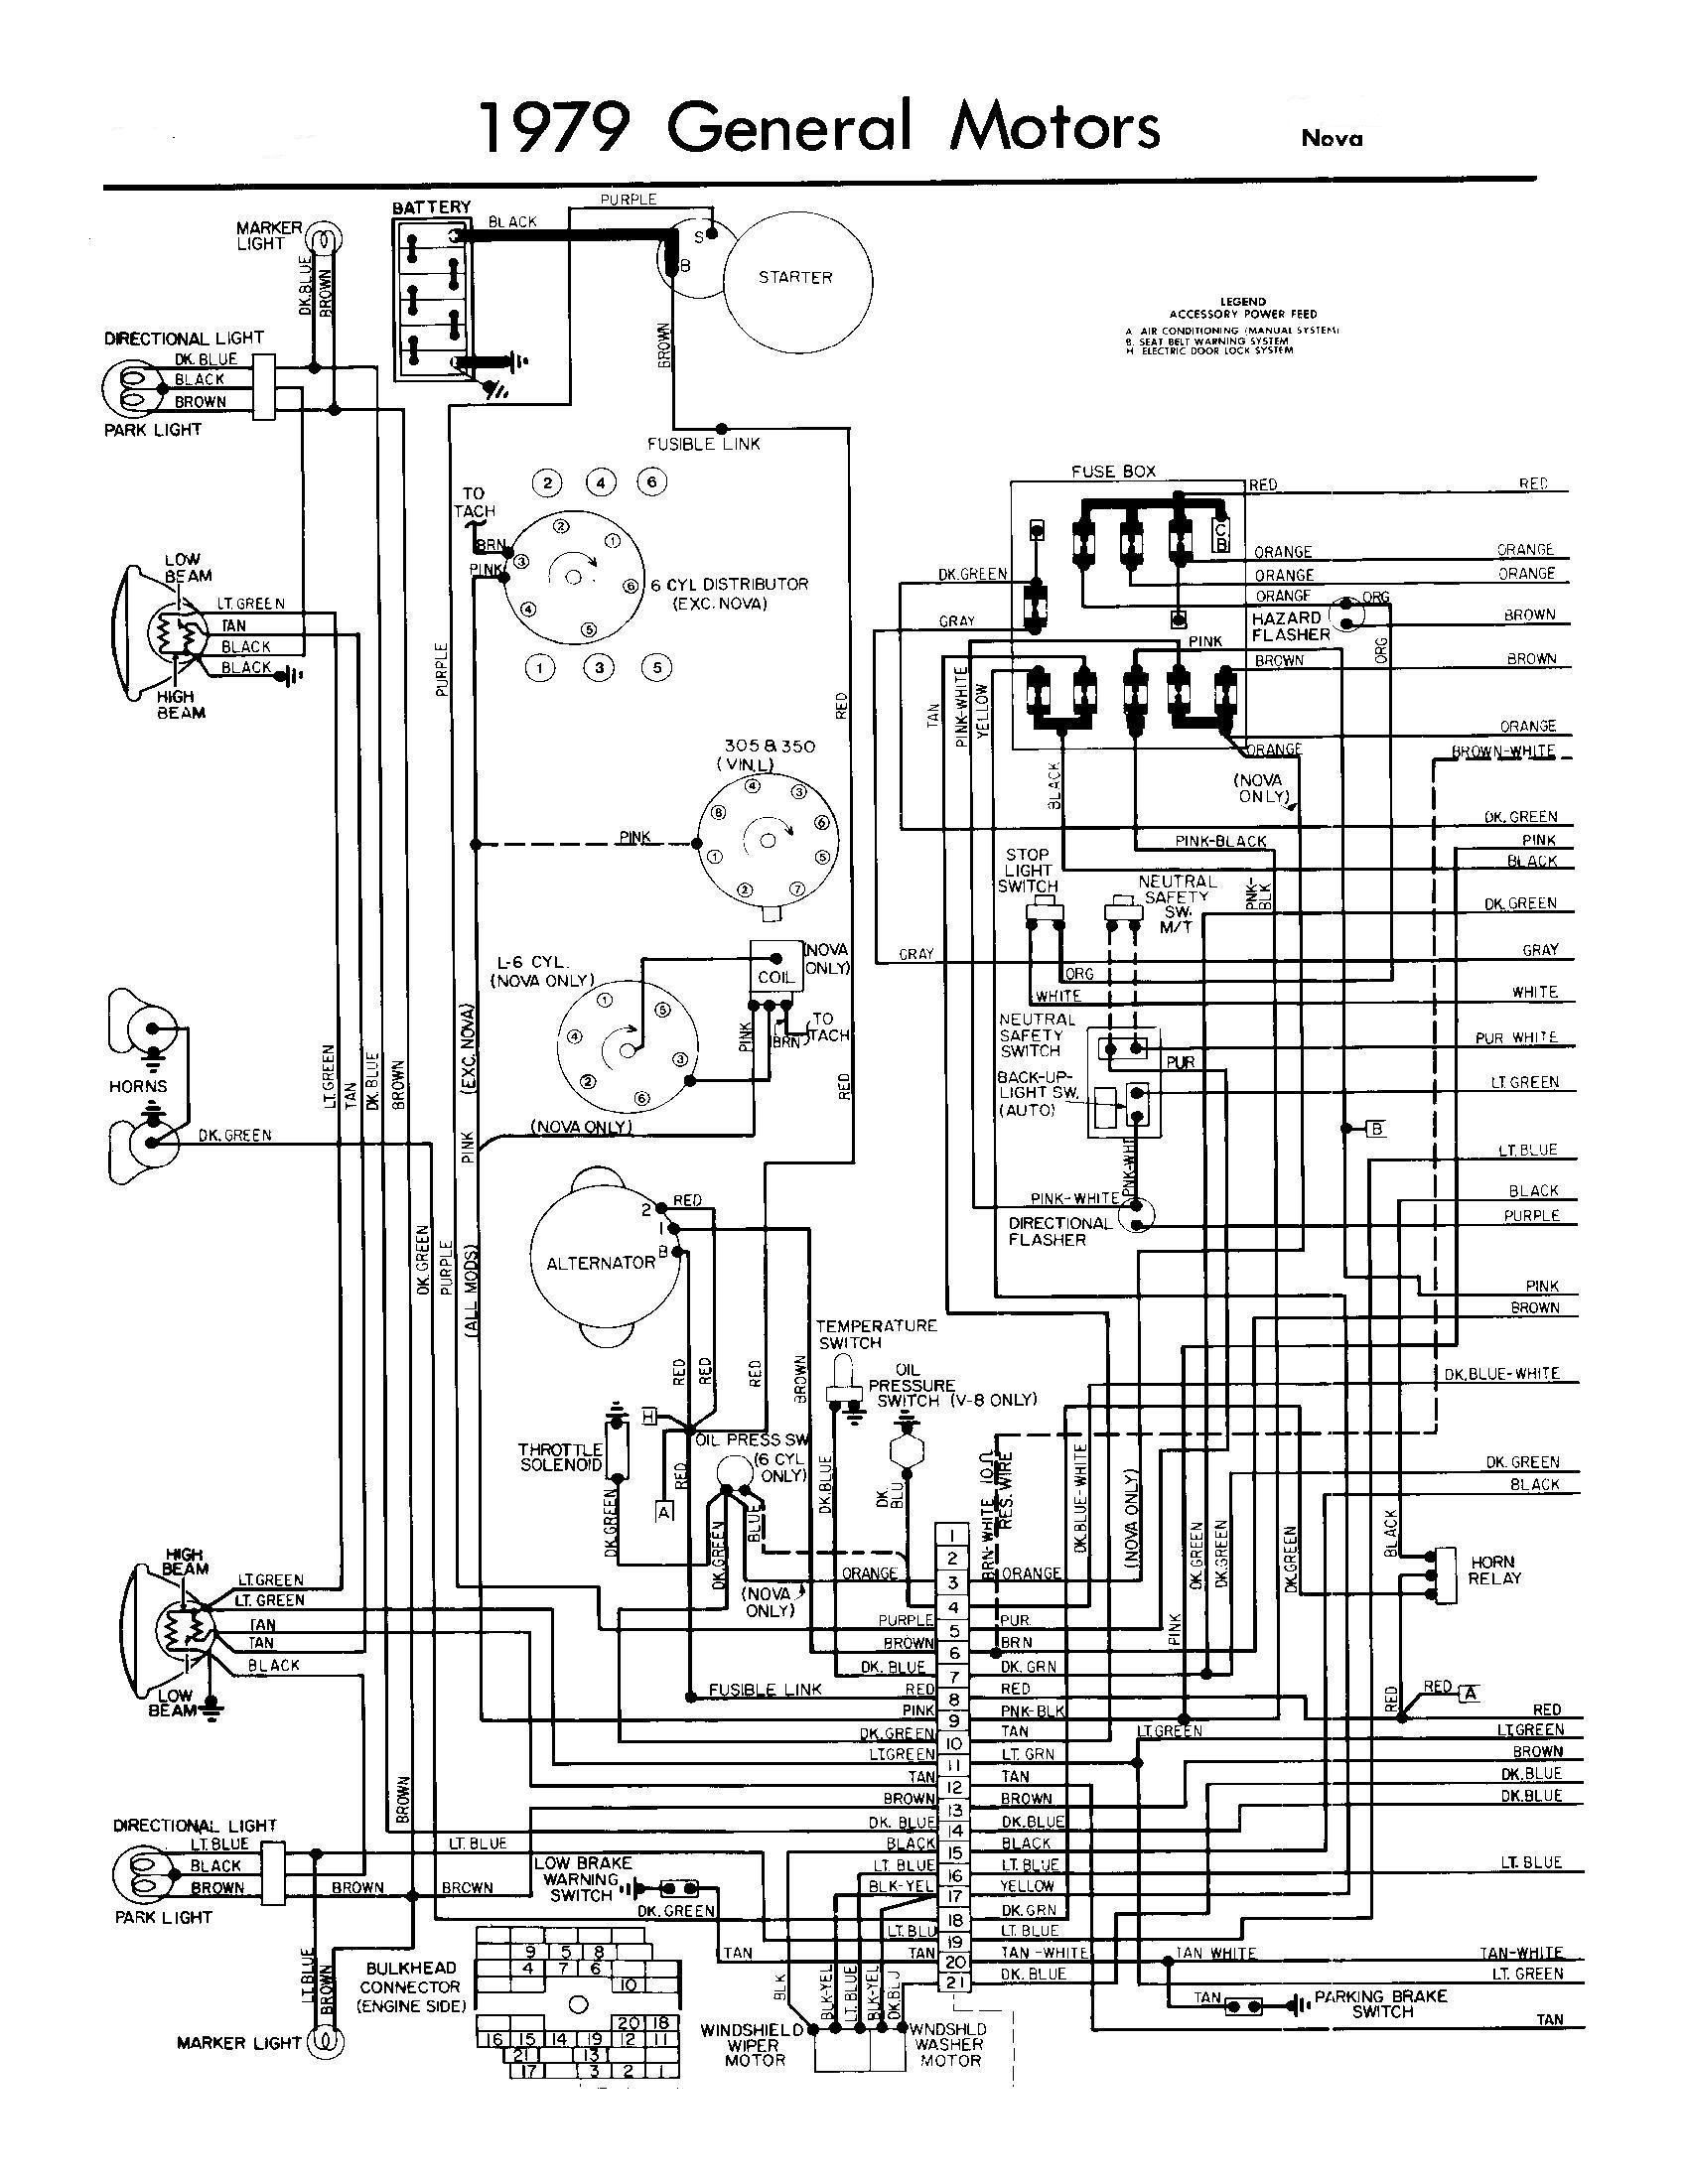 Af D D Bfeba F Db A on 1957 Chevy Wiring Harness Diagram For Horn